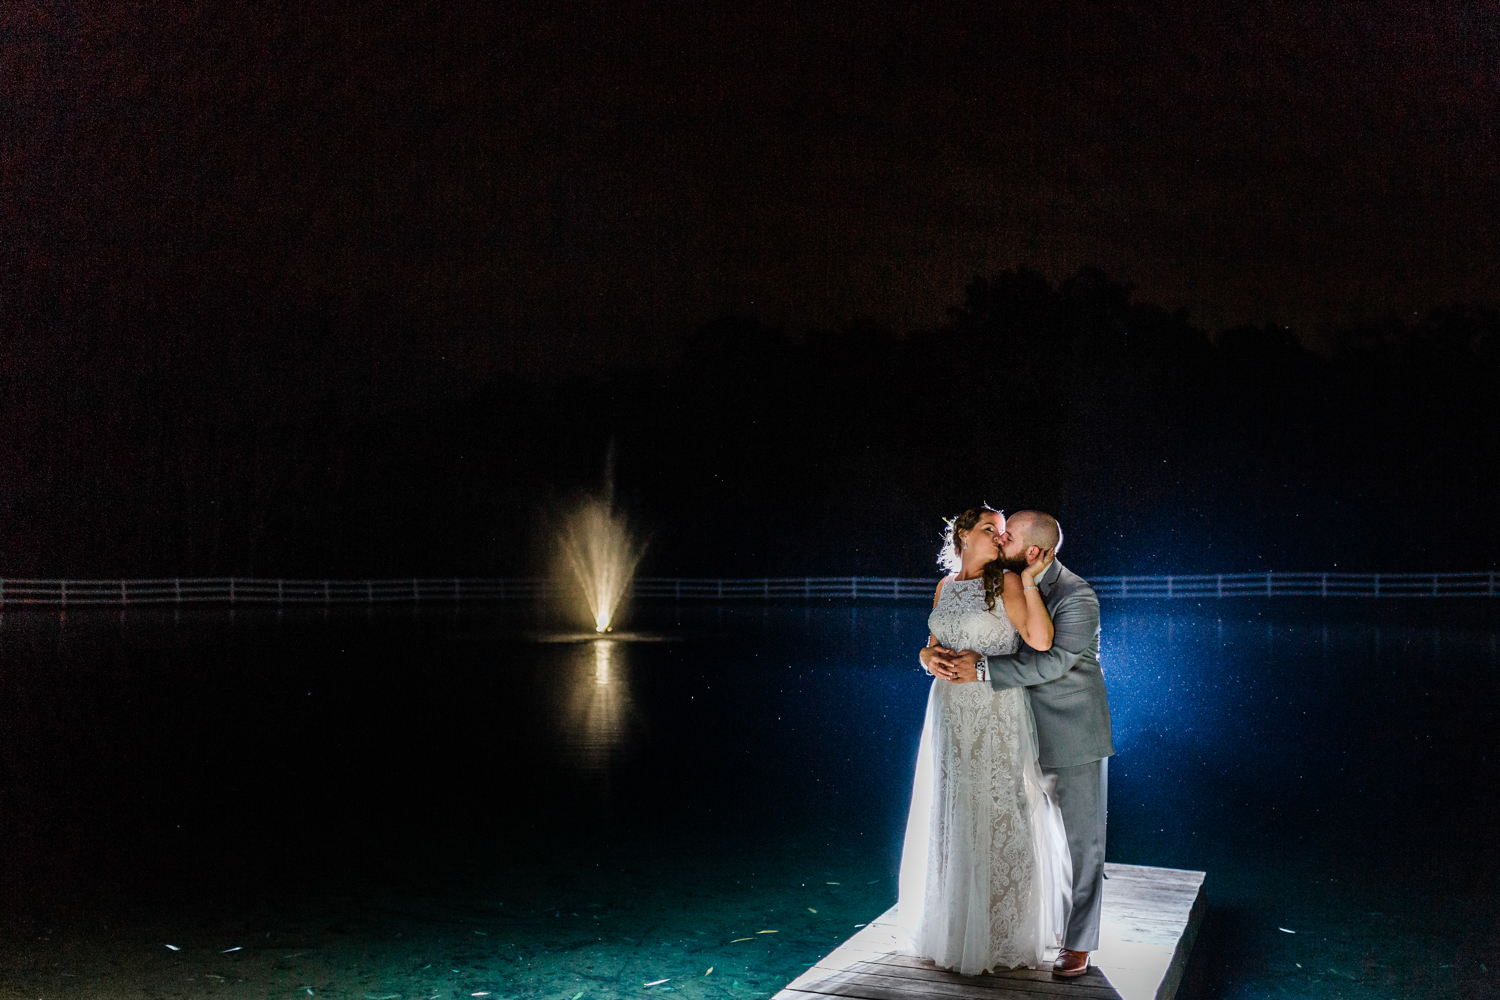 Highly rated wedding photographers in MD - best husband and wife team in DMV